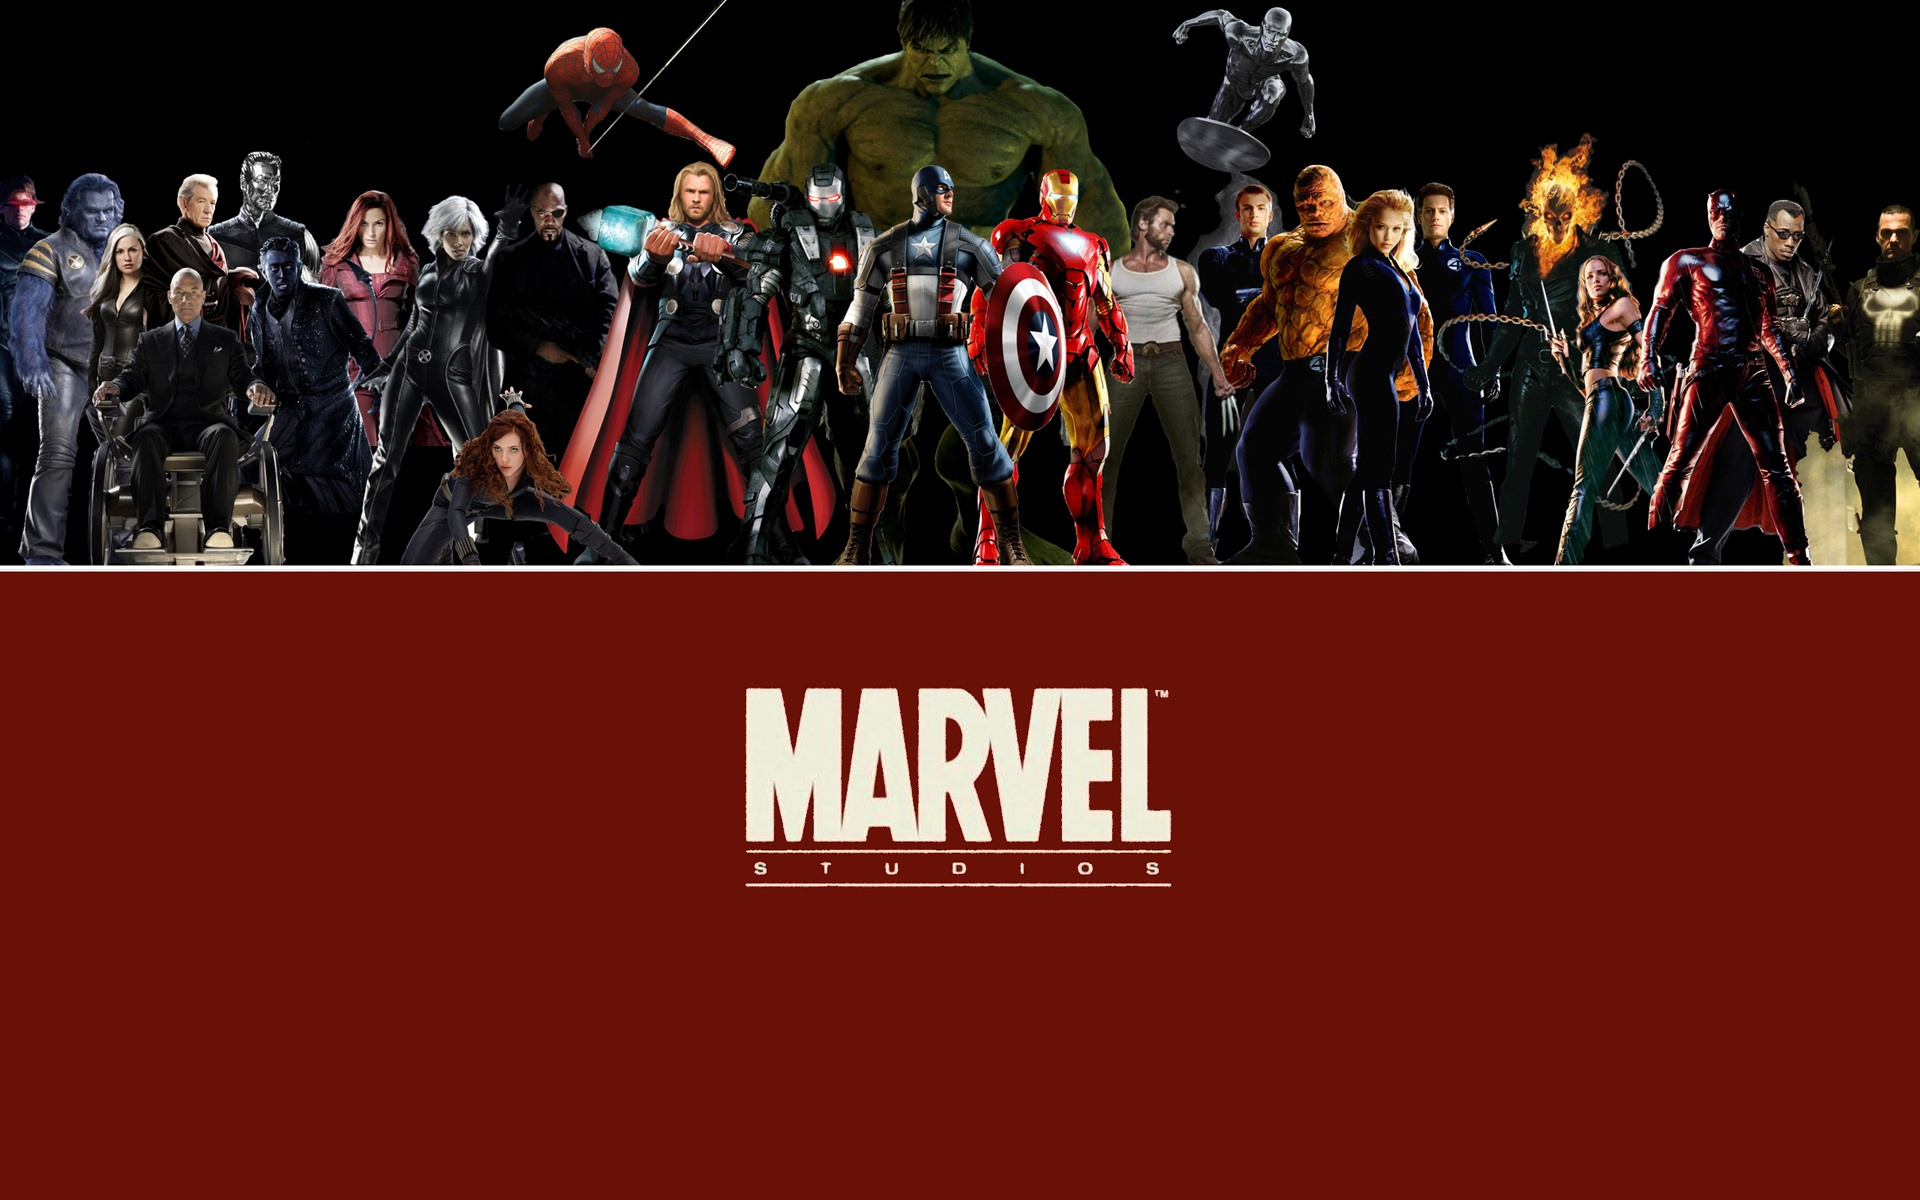 Avengers Marvel Studio Image HD Wallpaper WallpaperLepi 1920x1200